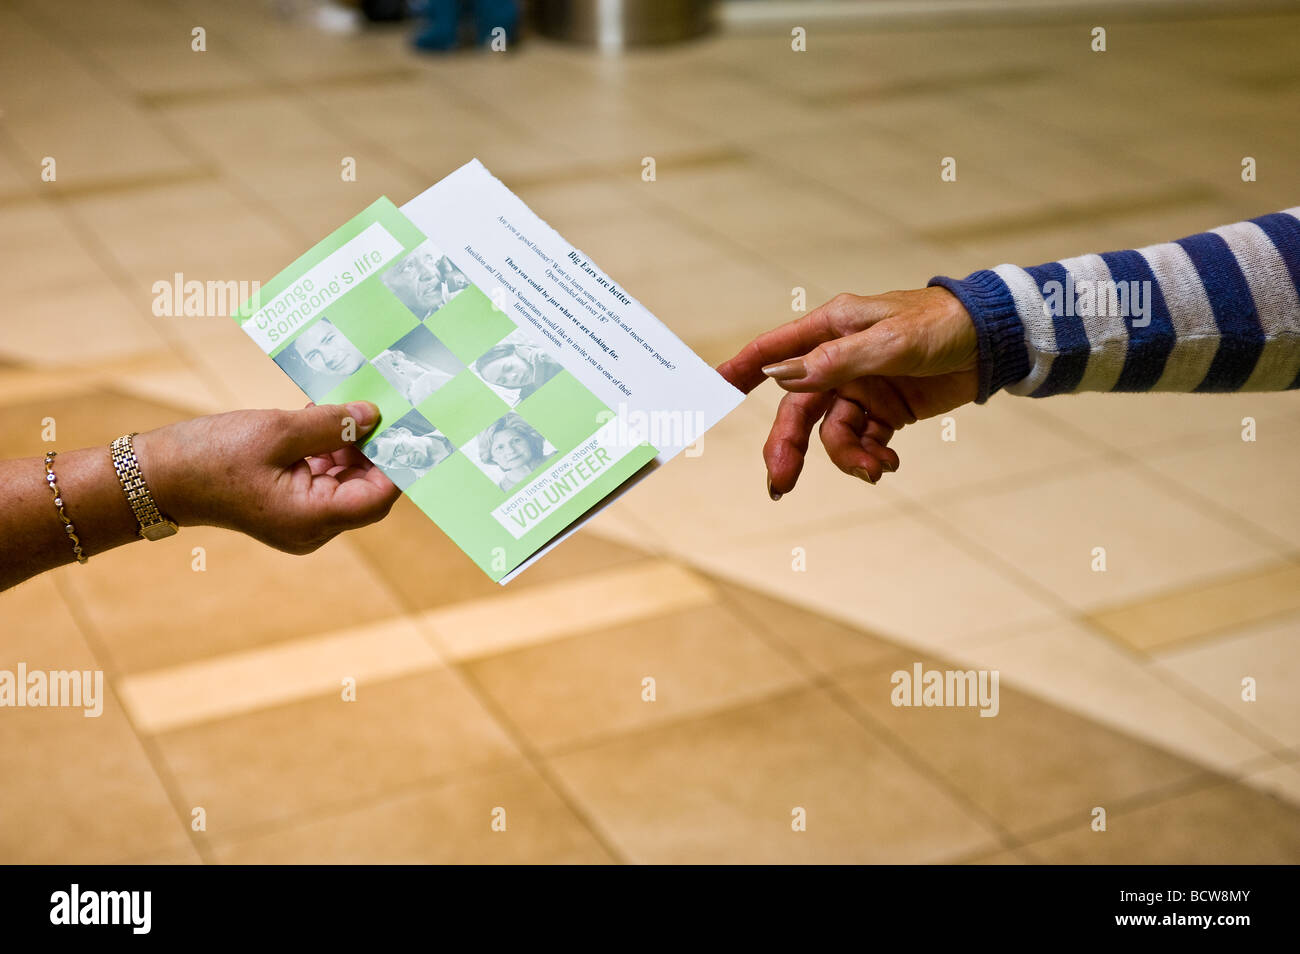 A volunteer from the charity Samaritans distributing leaflets. - Stock Image